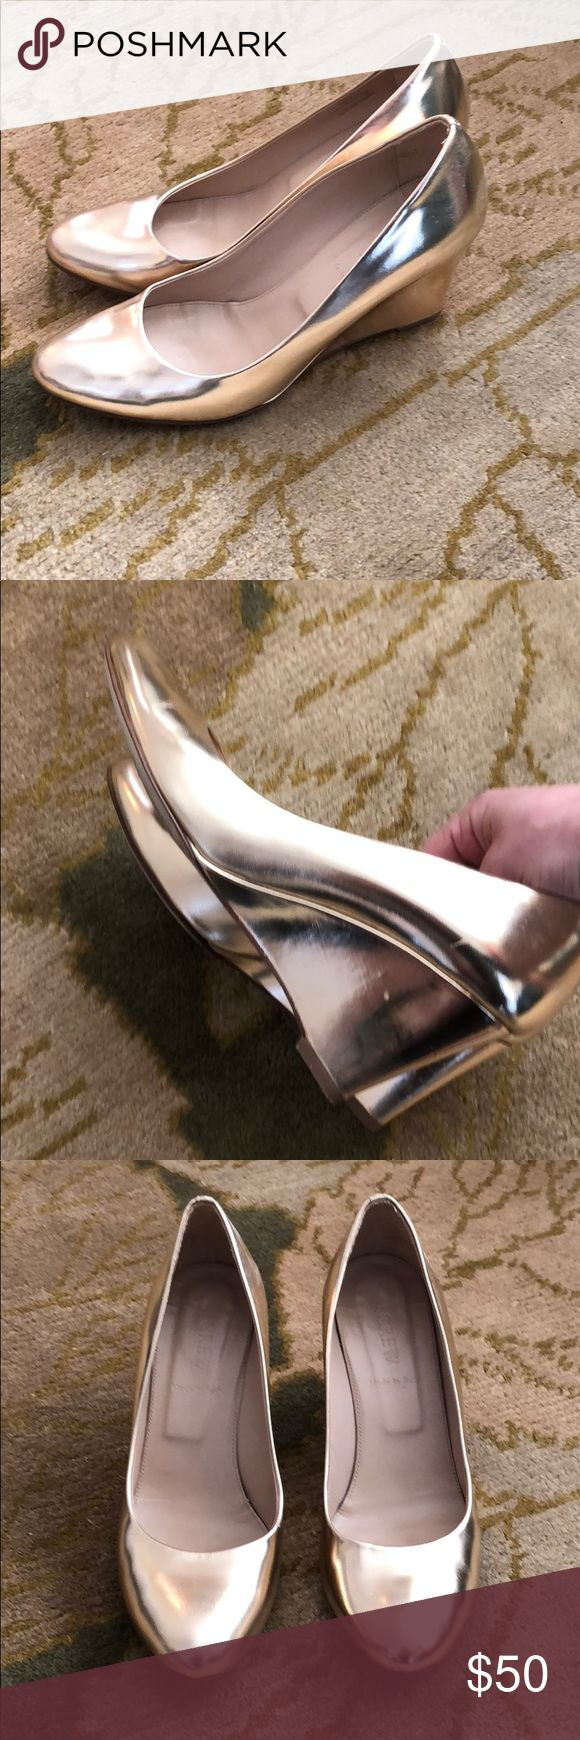 J. Crew gold platform heels Lovely gold platform heels with rounded toe. In great condition, minor wear on soles (shown) J. Crew Shoes Heels